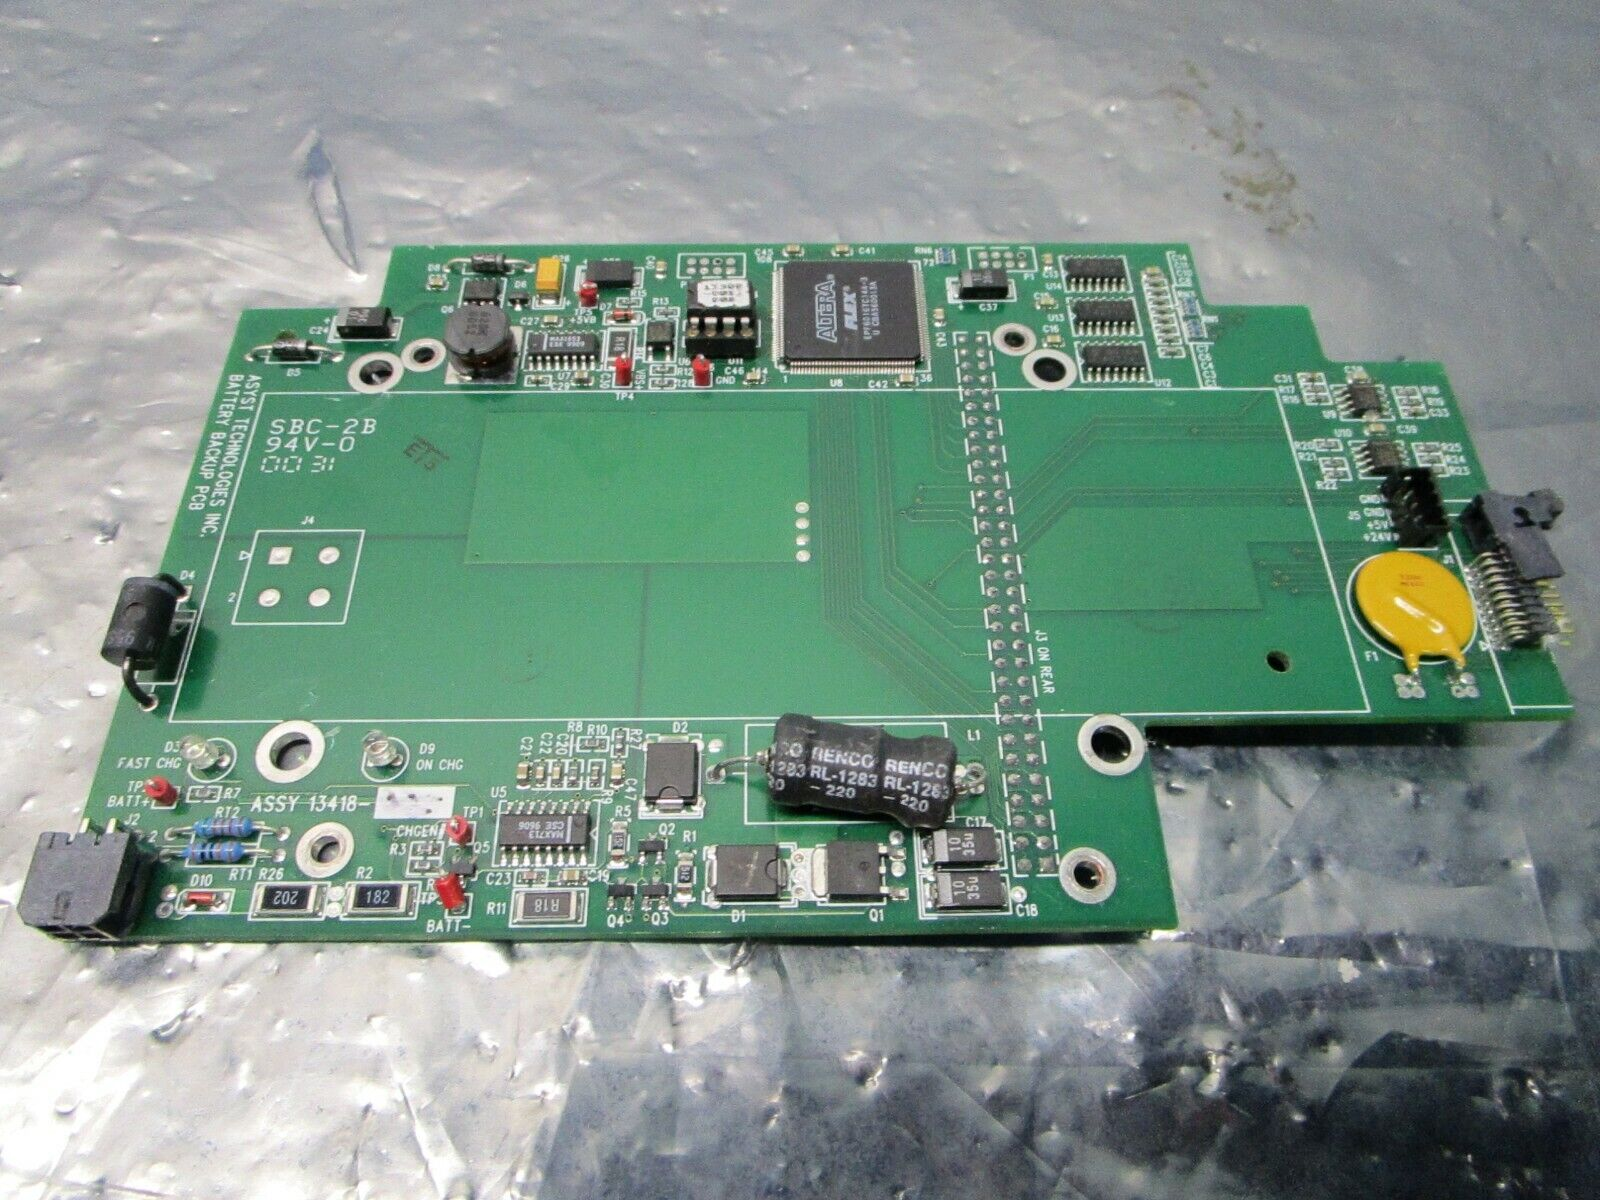 Asyst 13418-003 Battery Backup PCB, FAB 13417-001, 101180